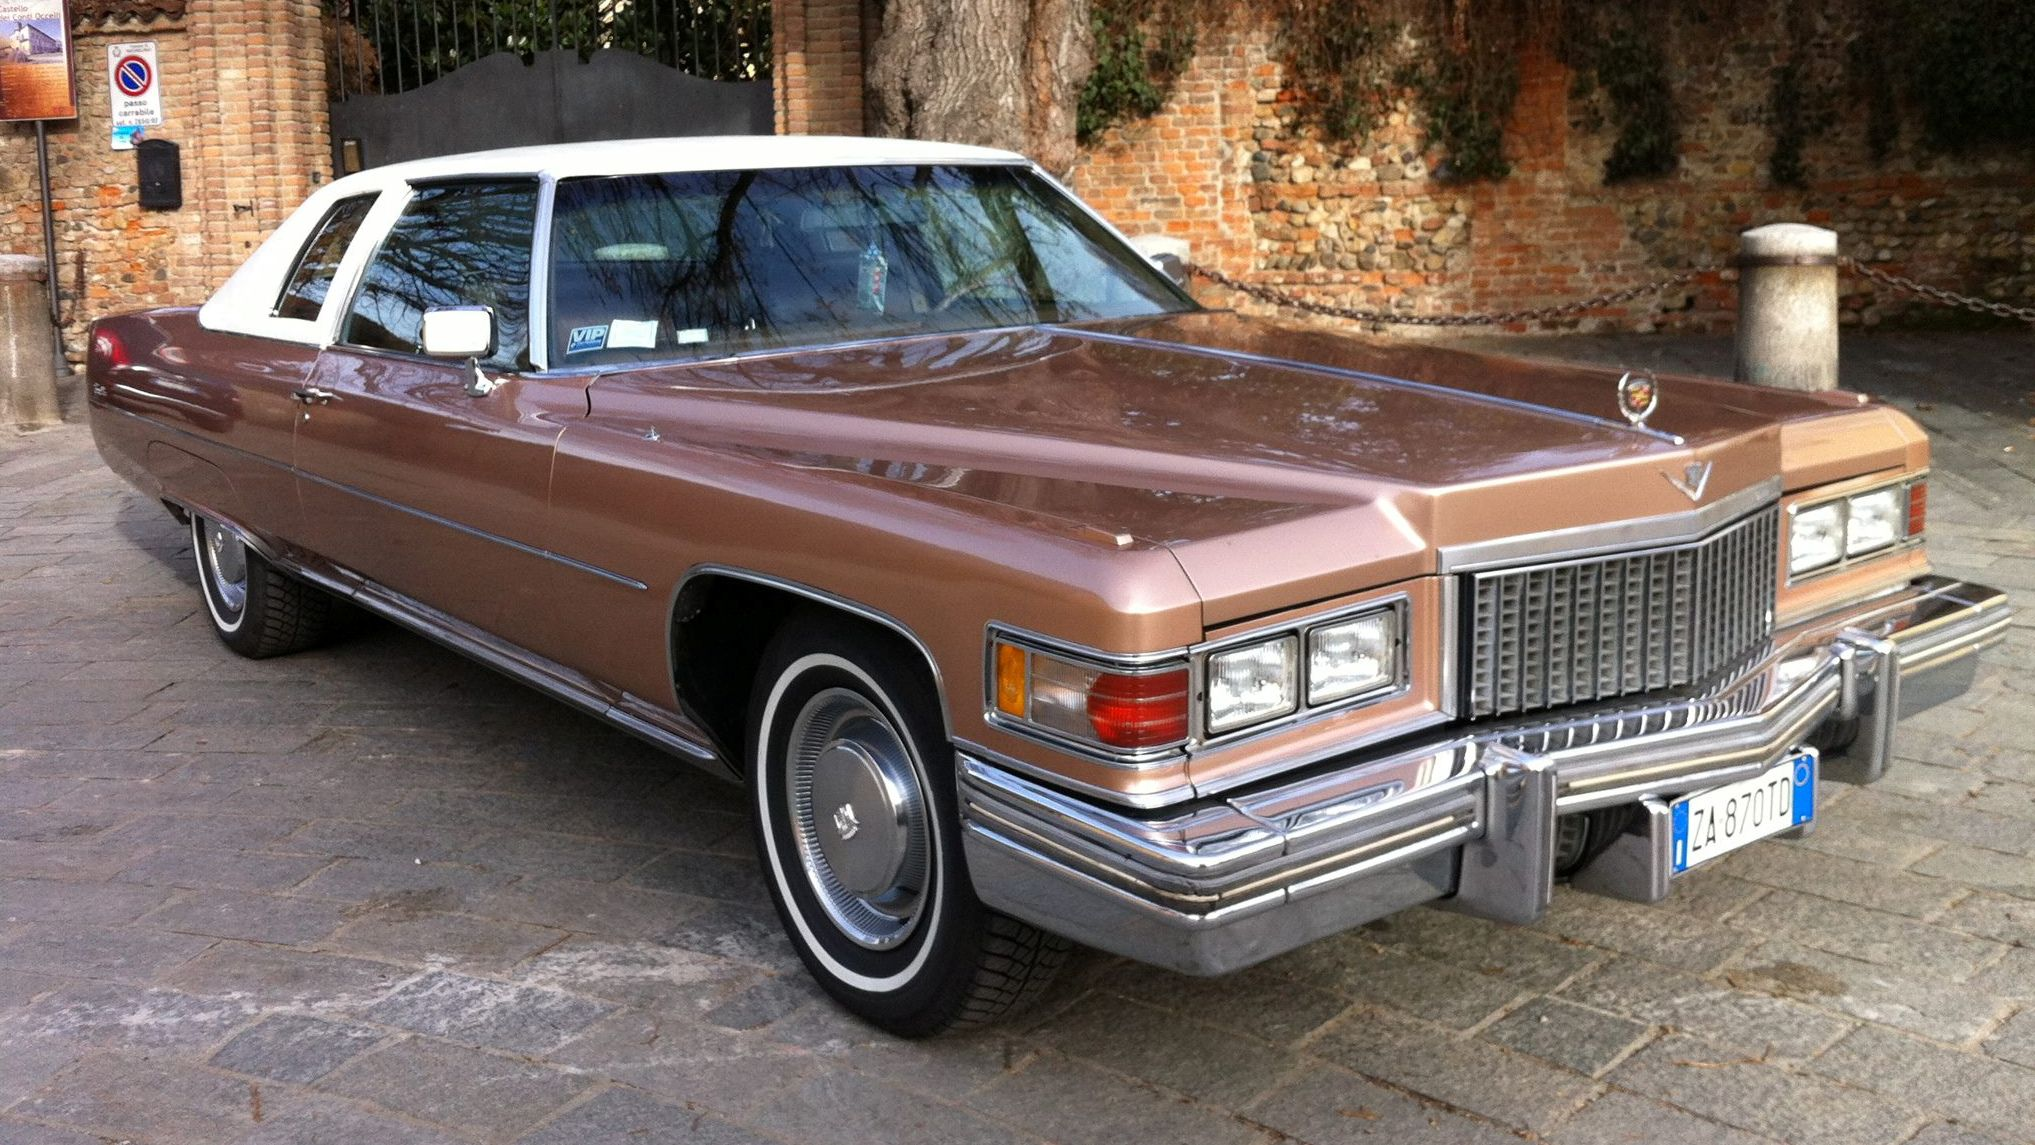 1975 cadillac coupe deville w euro spec turn signals finished in cameo rosewood